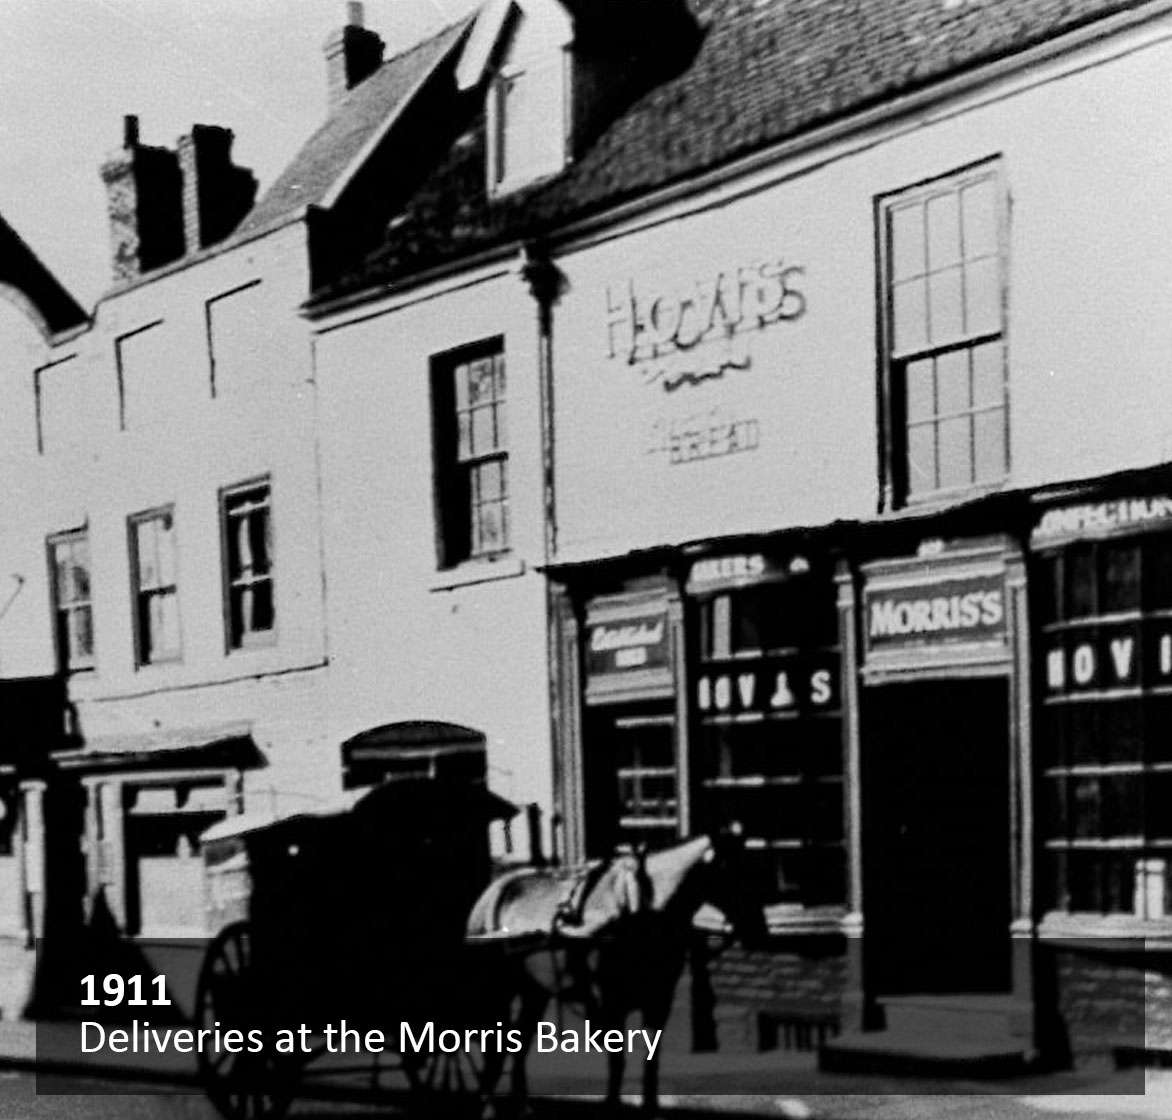 Deliveries at the Morris Bakery